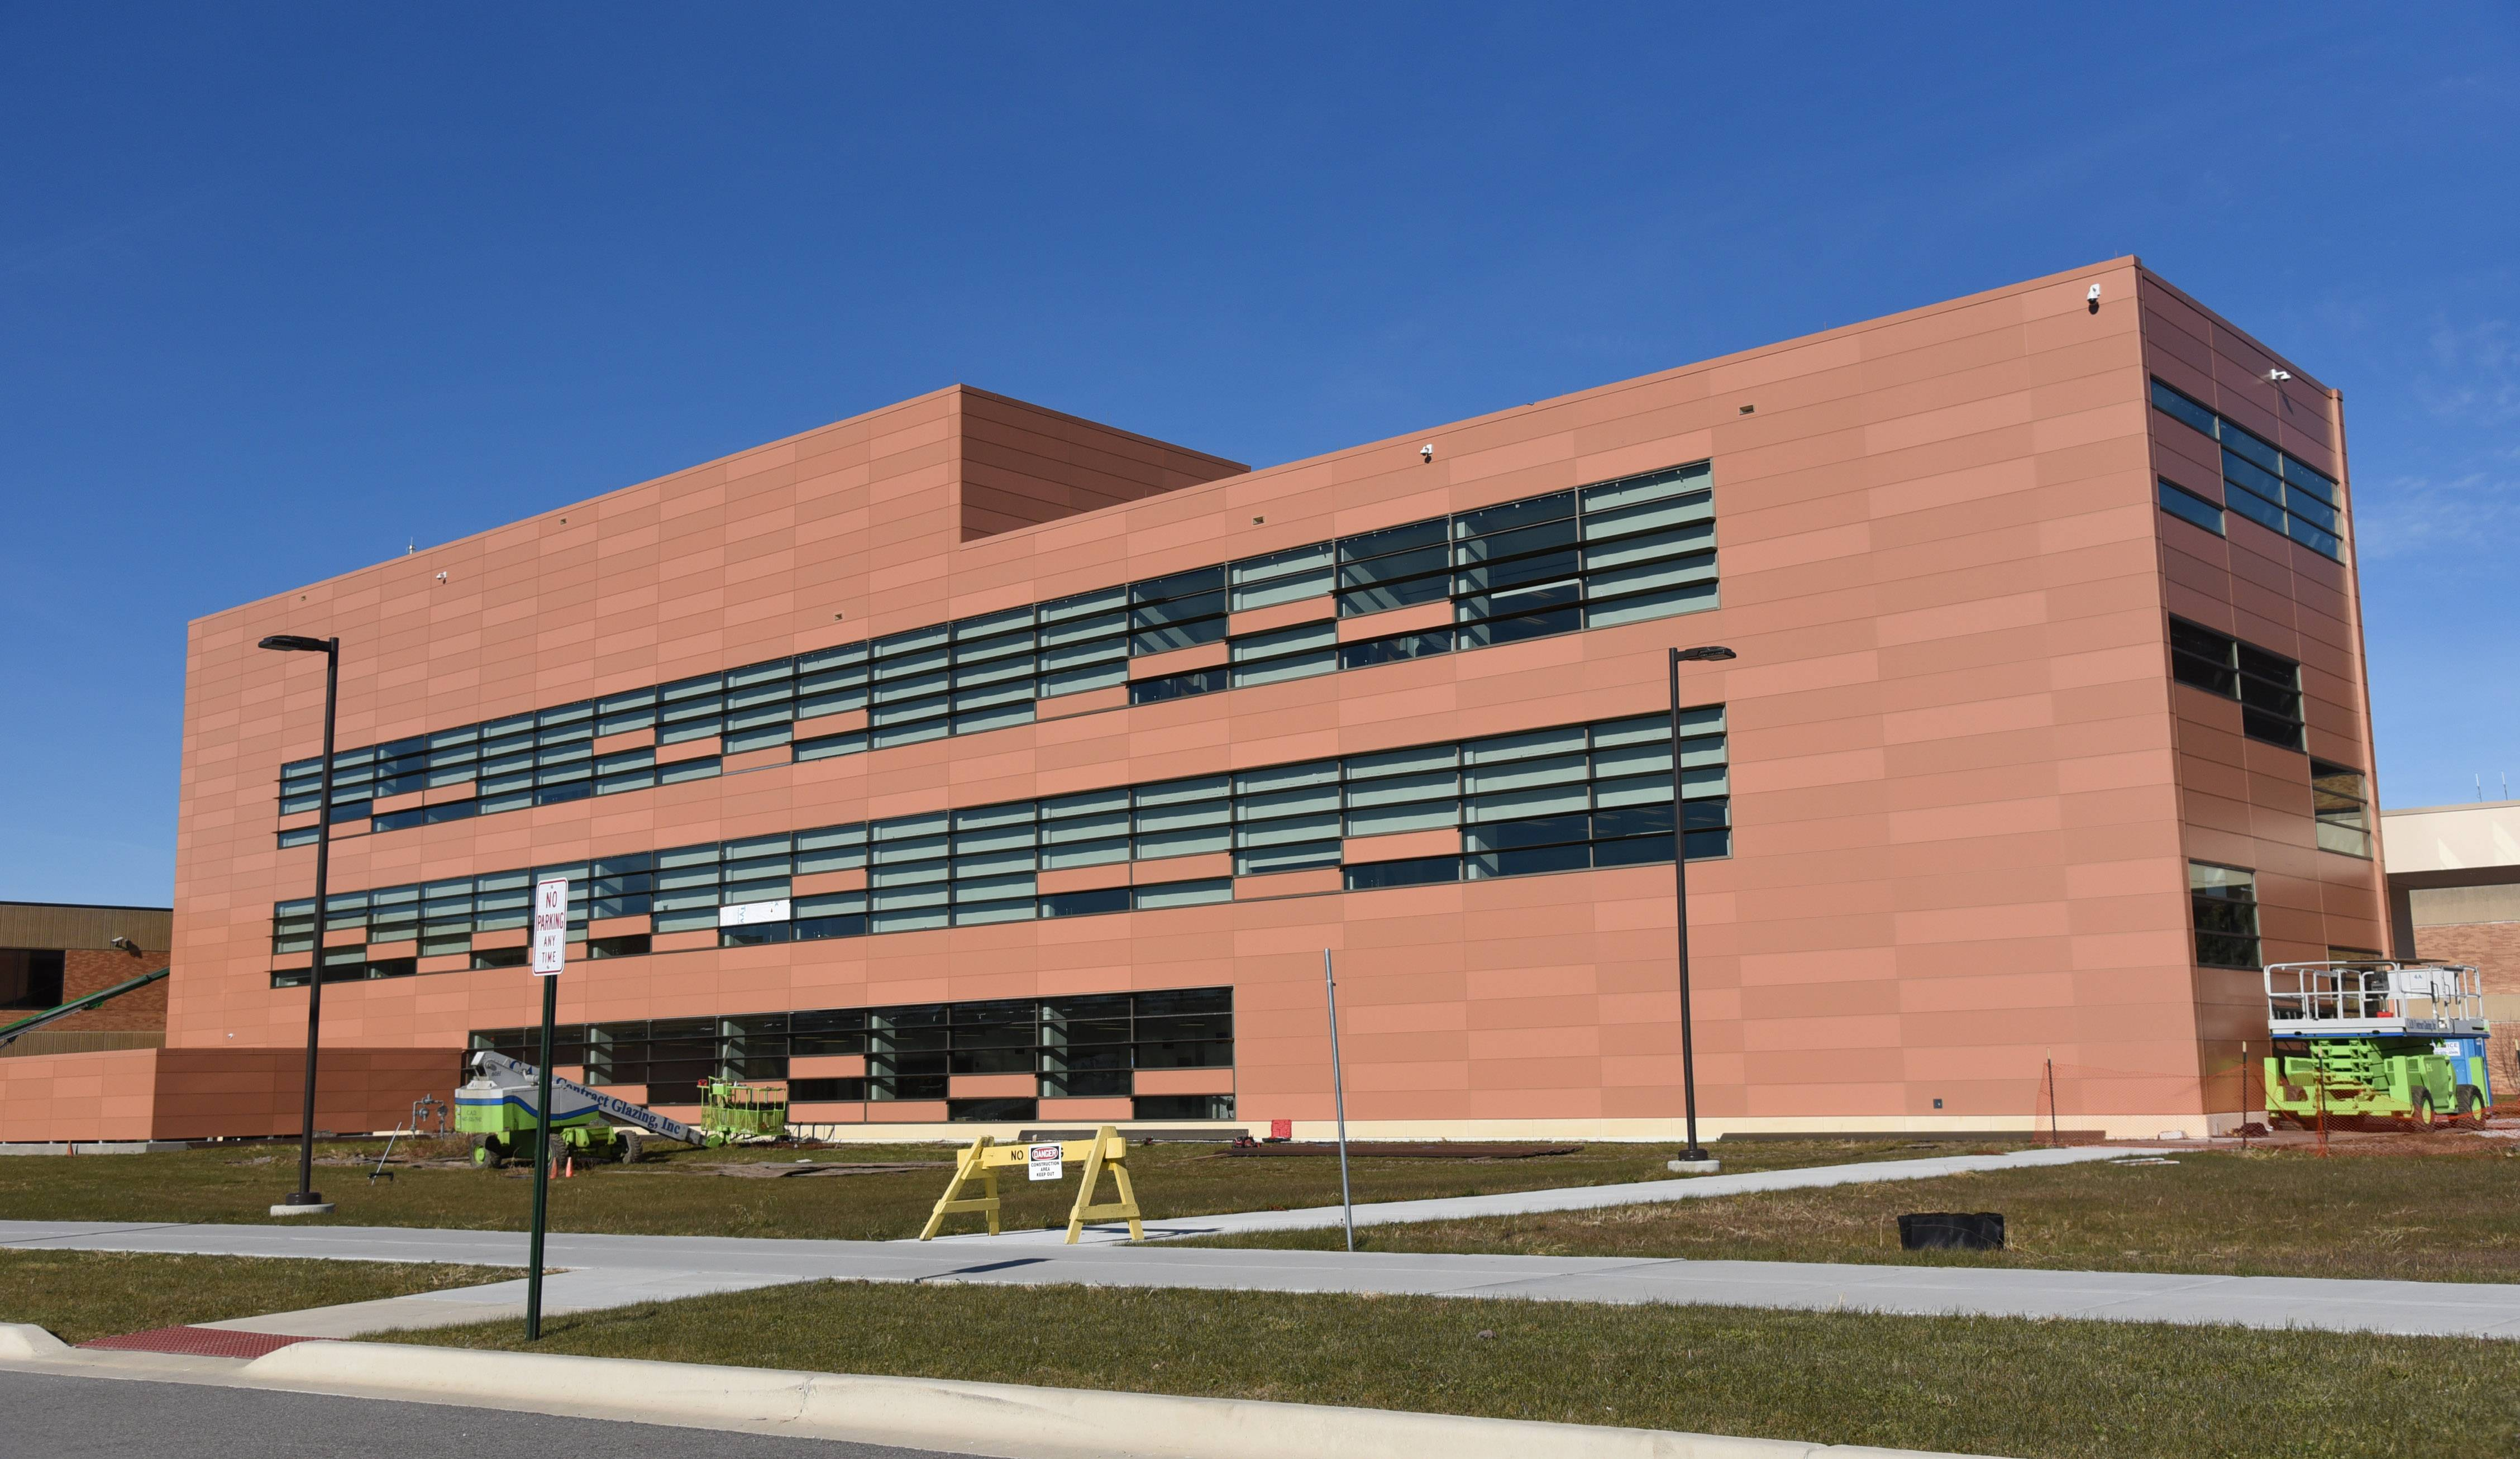 After numerous delays, the new College of Lake County's Science Building in Grayslake is nearing completion.